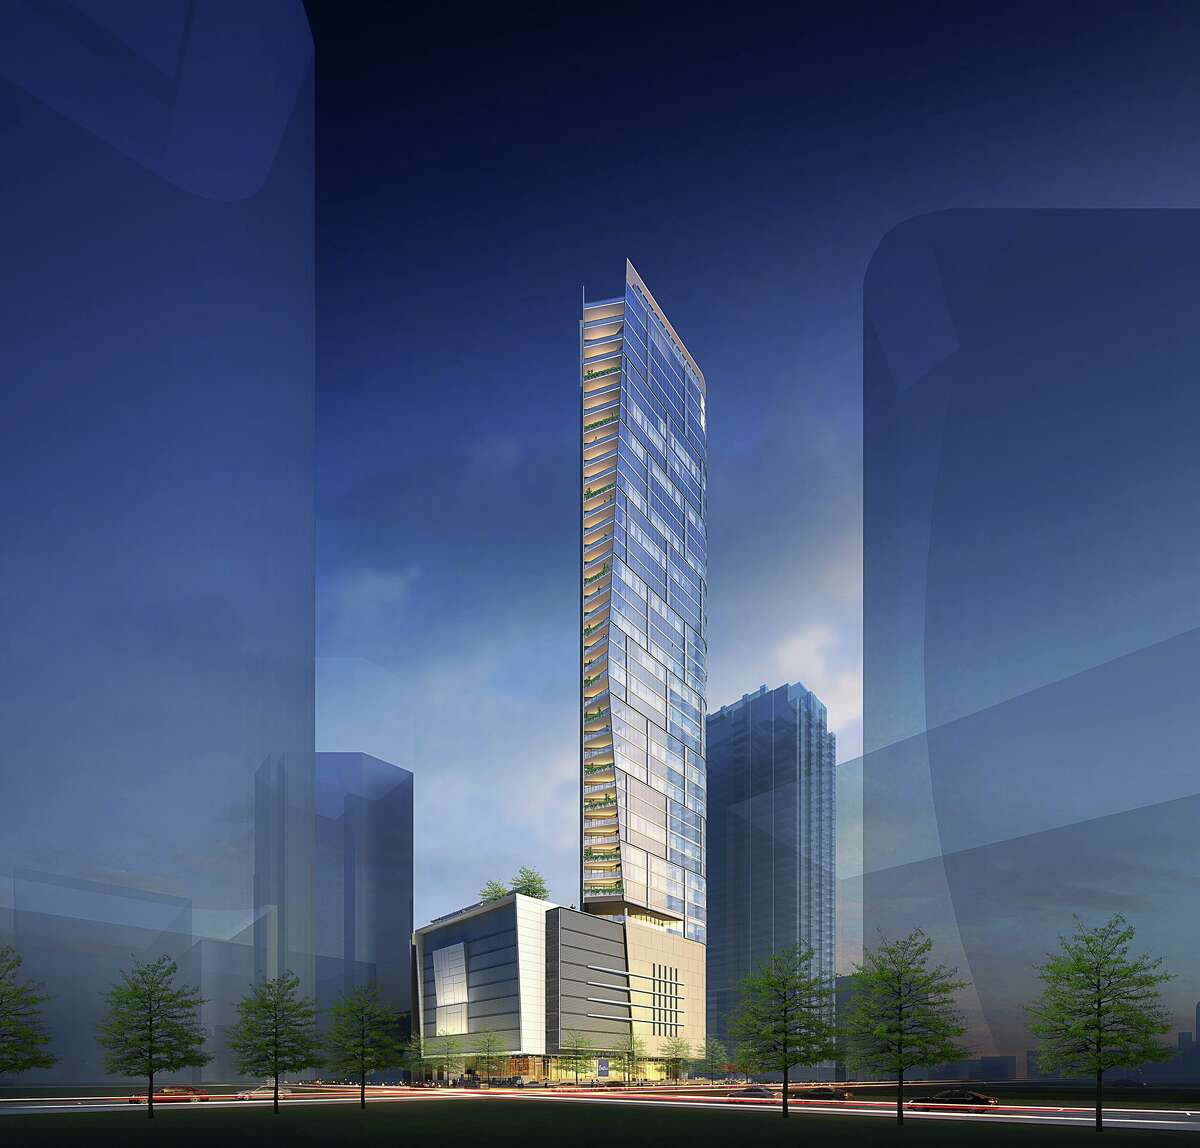 This artist's rendering shows the exterior of The Preston, a 46-story residential tower under construction in the 700 block of Prairie Street in downtown Houston on the site of what was once an employee parking garage of the Houston Chronicle.